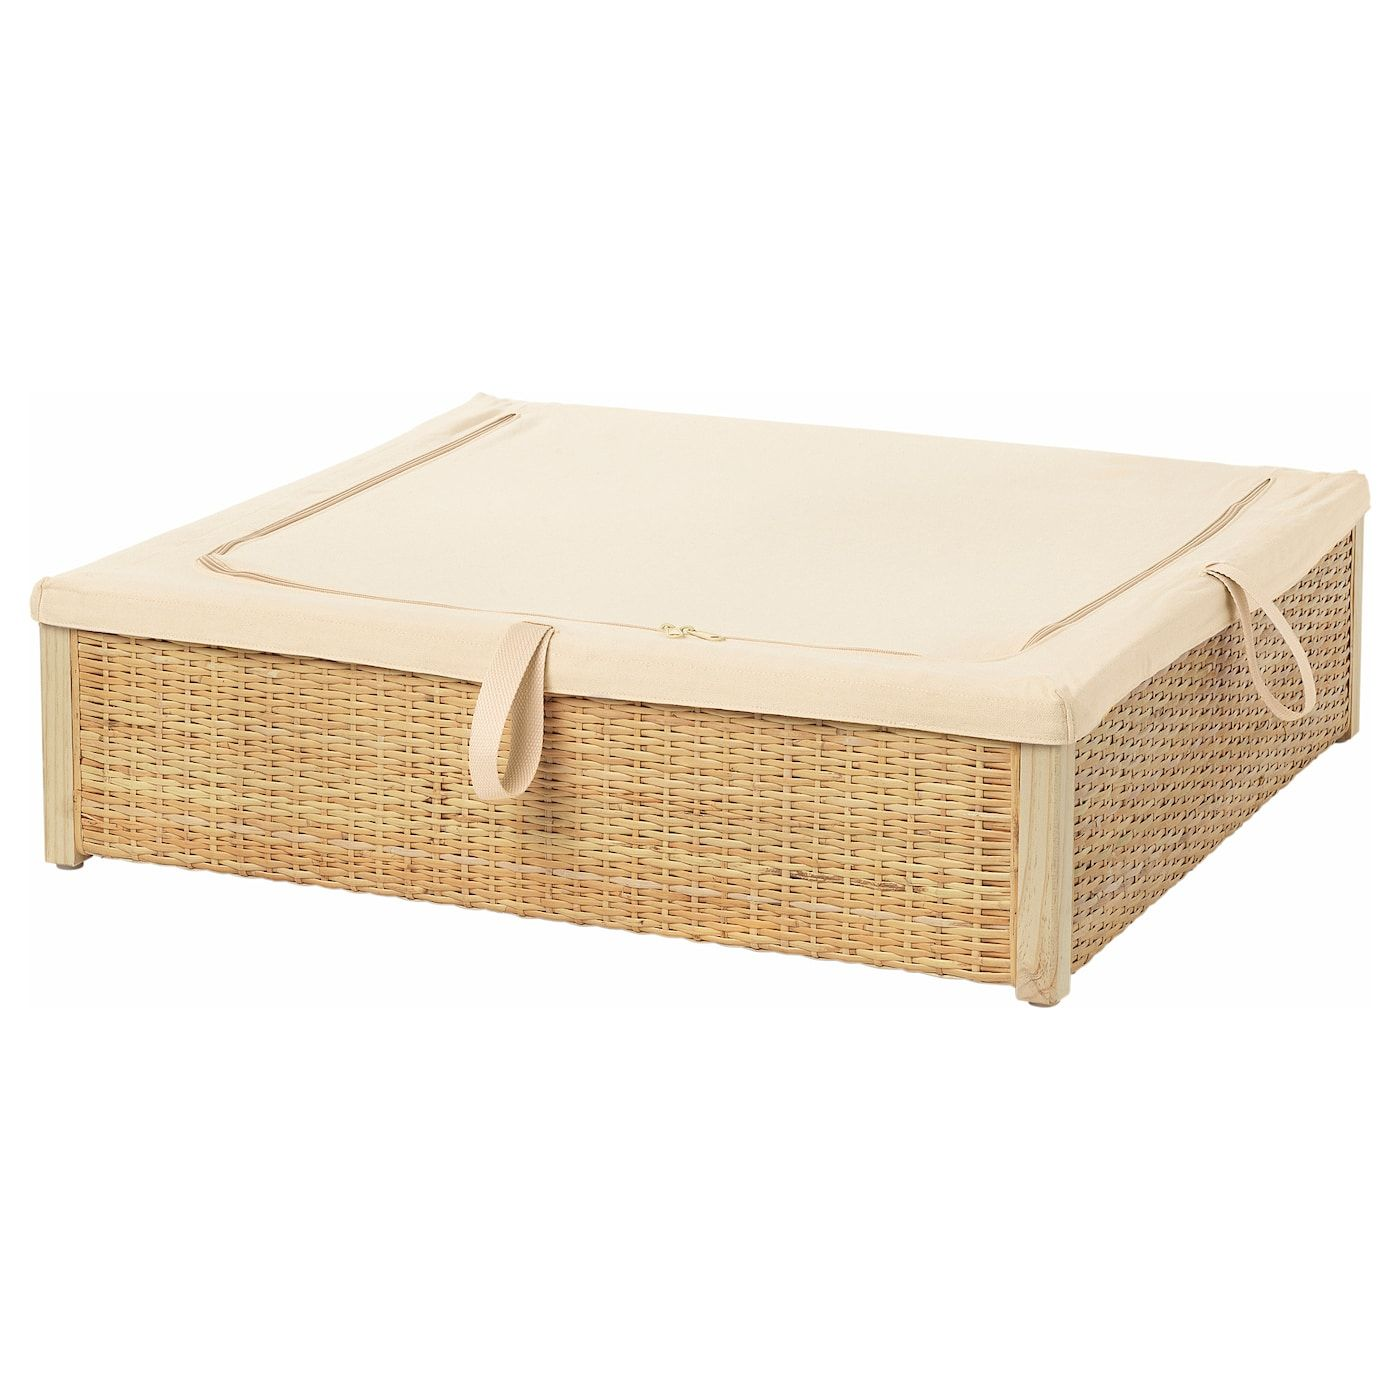 Bett Mit Schubladen Ikea RÖmskog Underbed Storage Box Rattan In 2019 Apartment Under